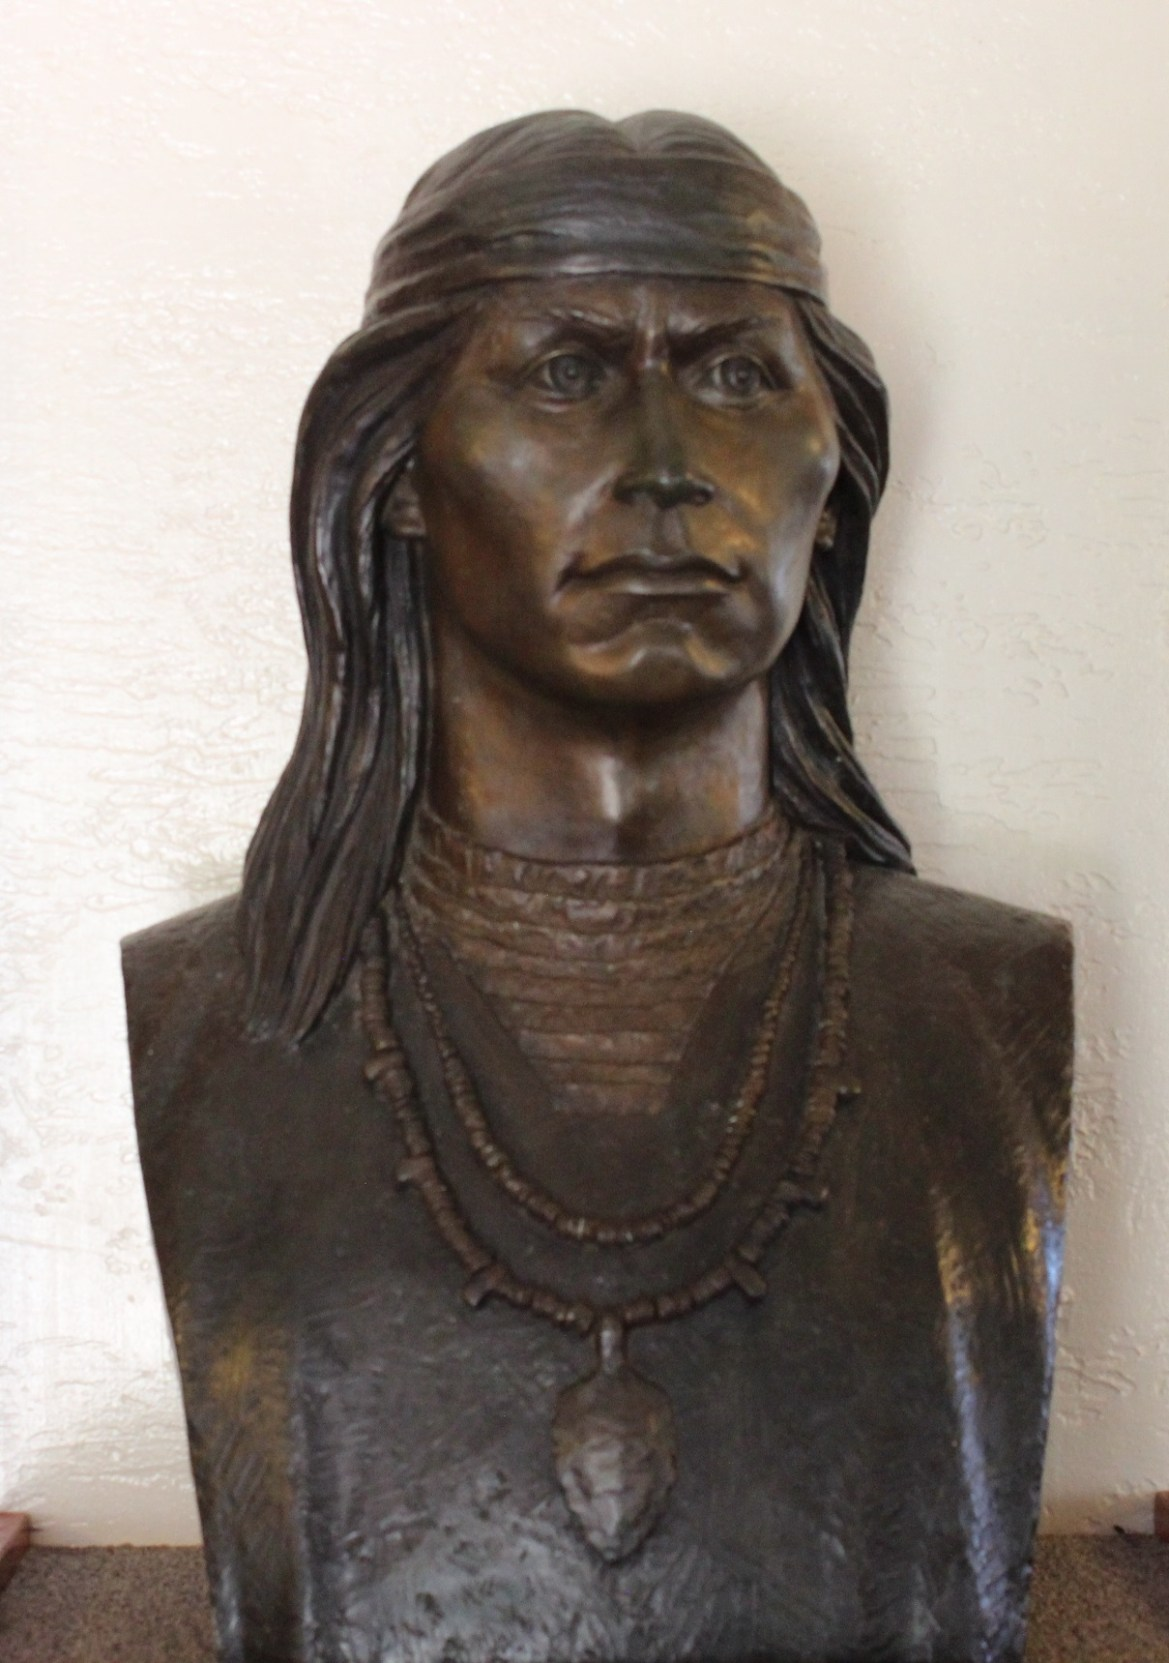 A statue bust of a man wearing a headband over his long hair, and two necklaces.